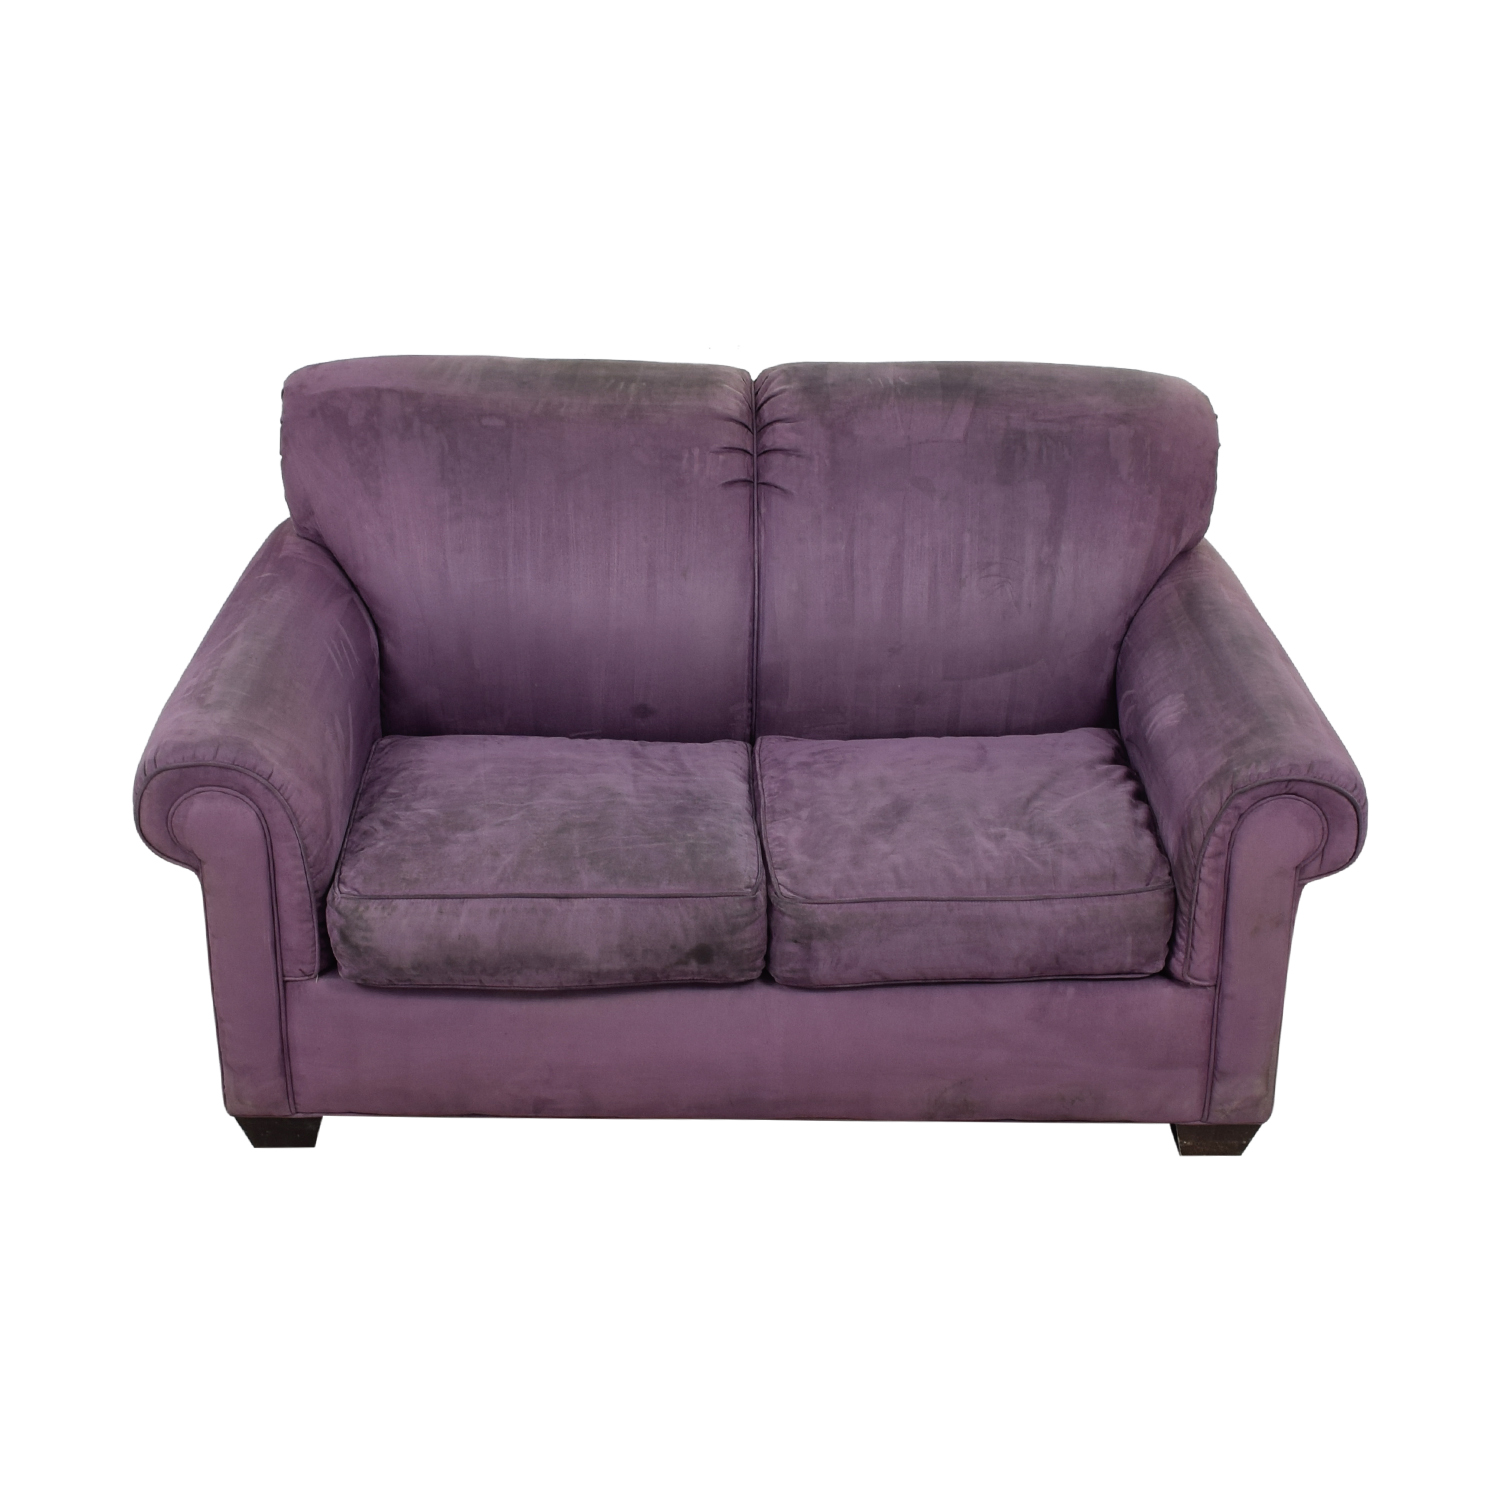 Rowe Purple Two-Cushion Loveseat Rowe